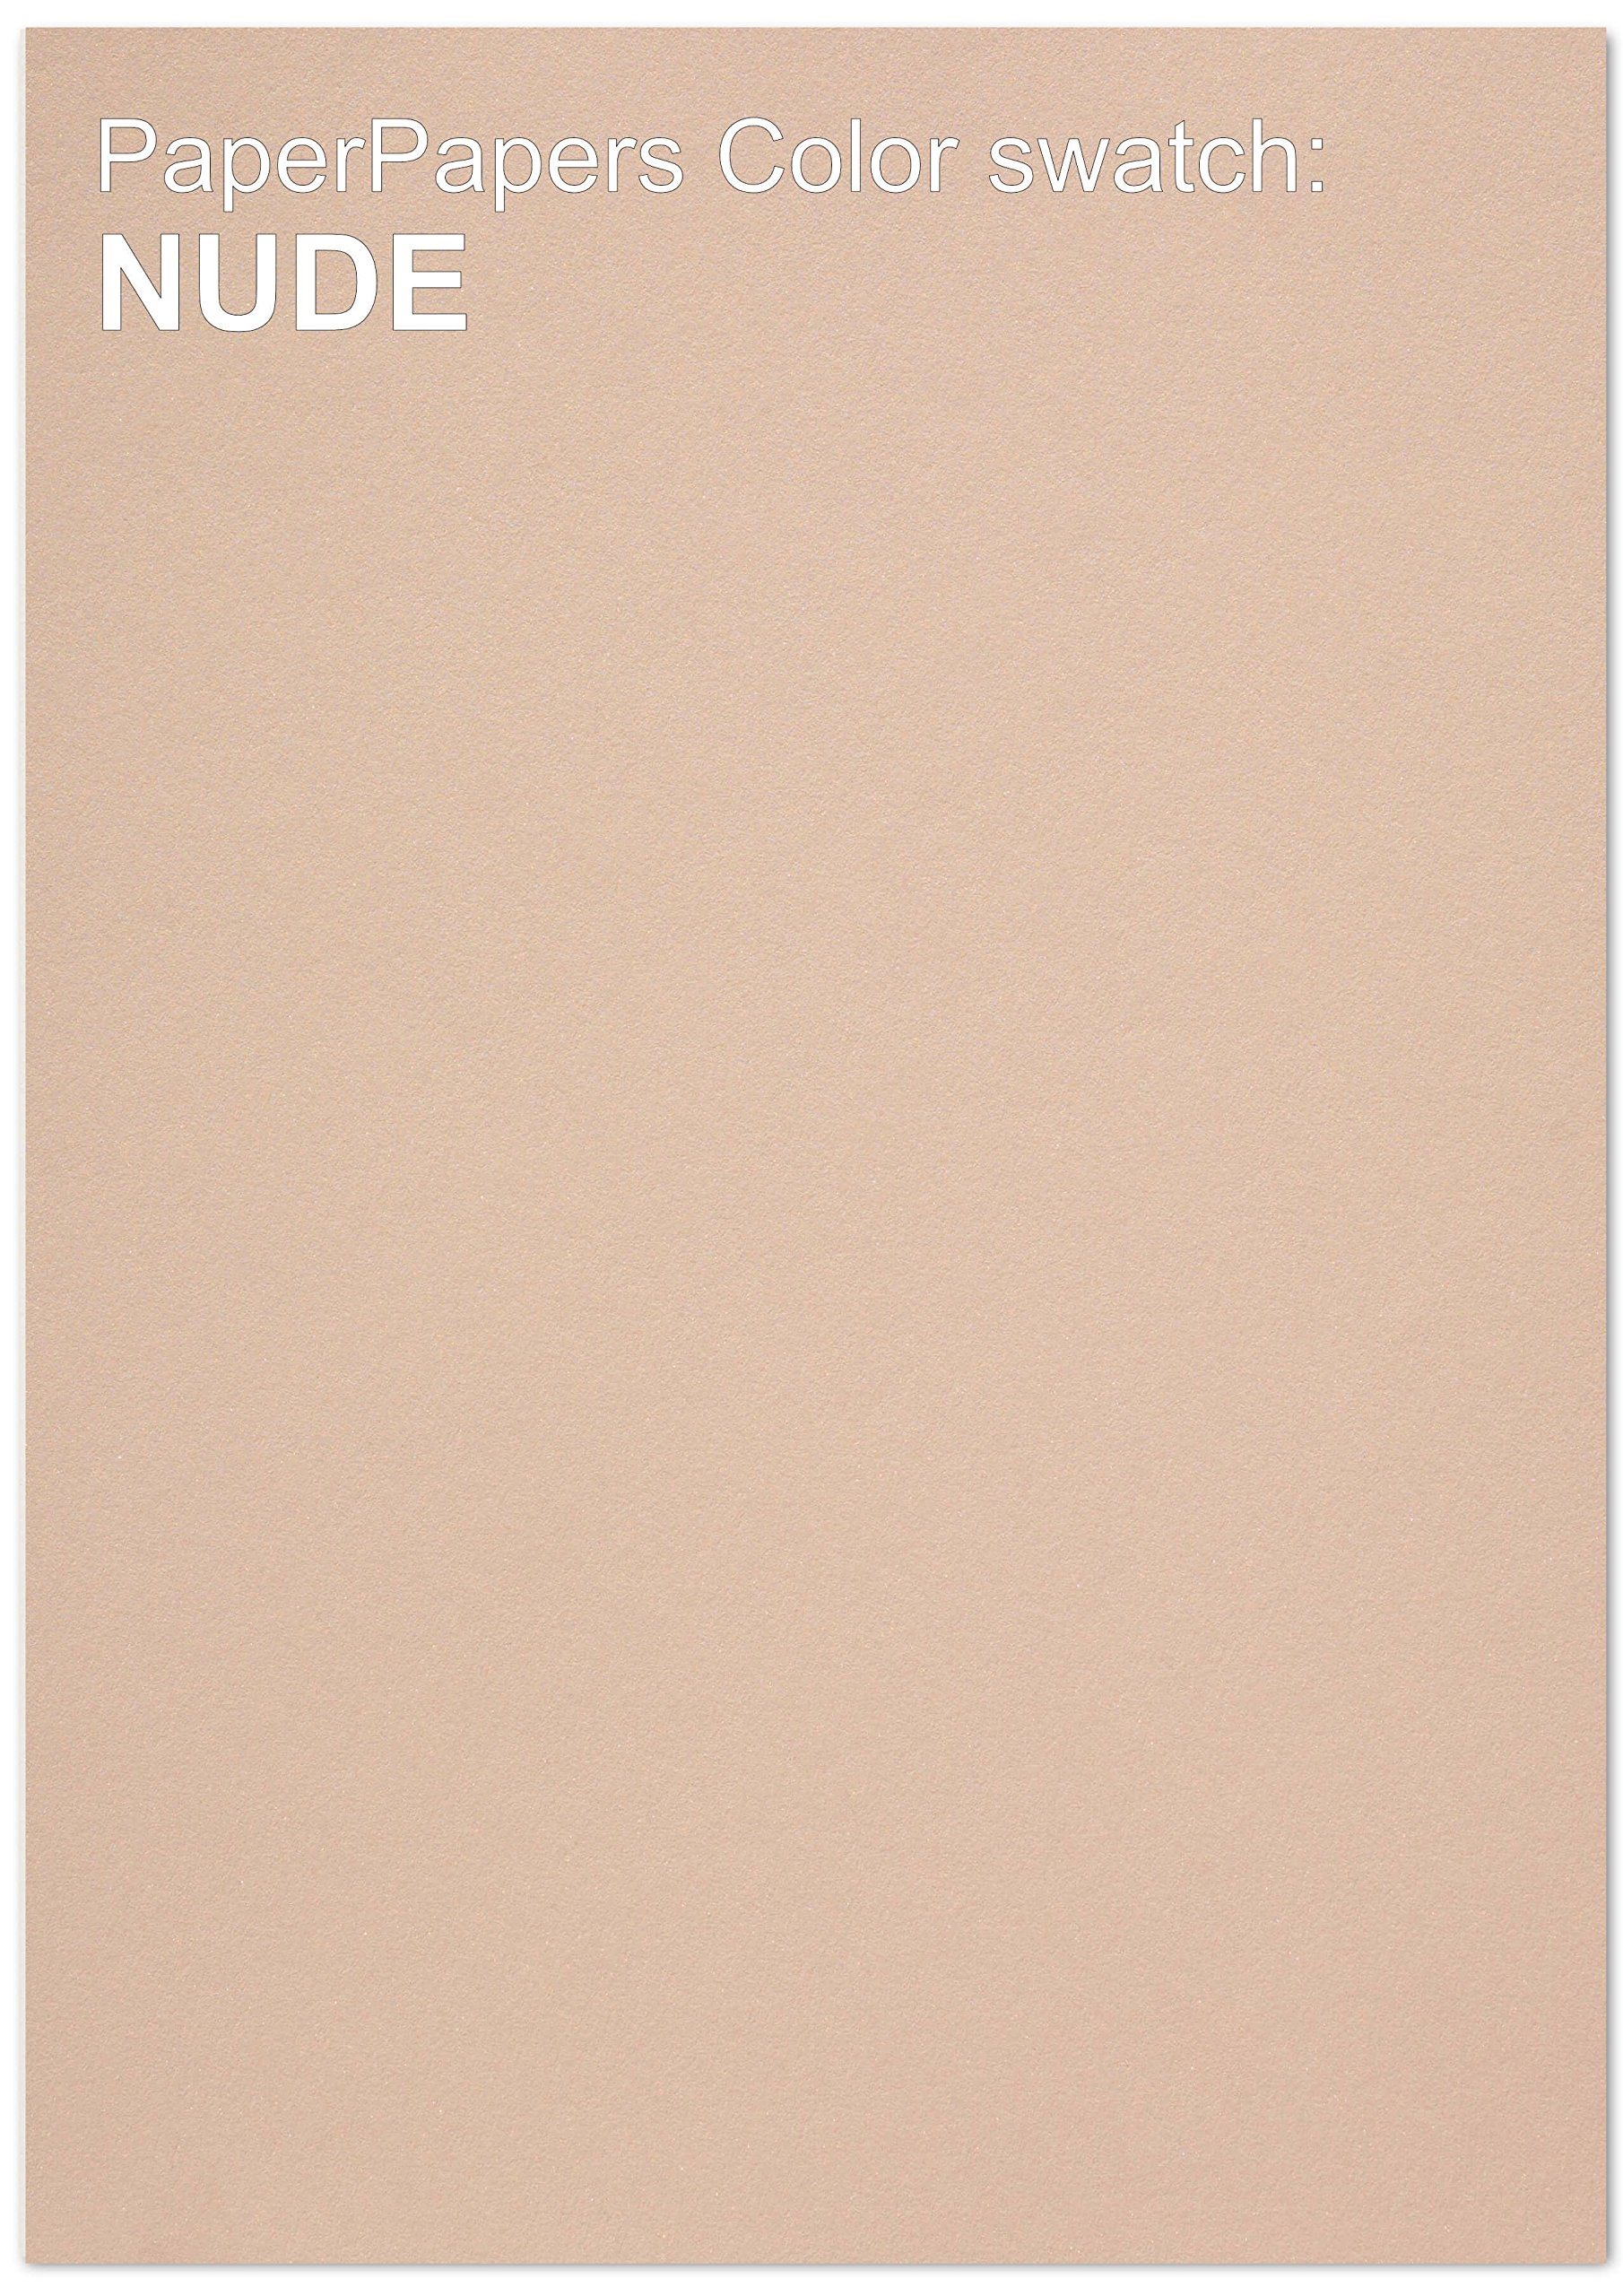 Curious Metallic - NUDE Paper - 32T Multipurpose Paper - 12 x 18 - 200 PK by Paper Papers